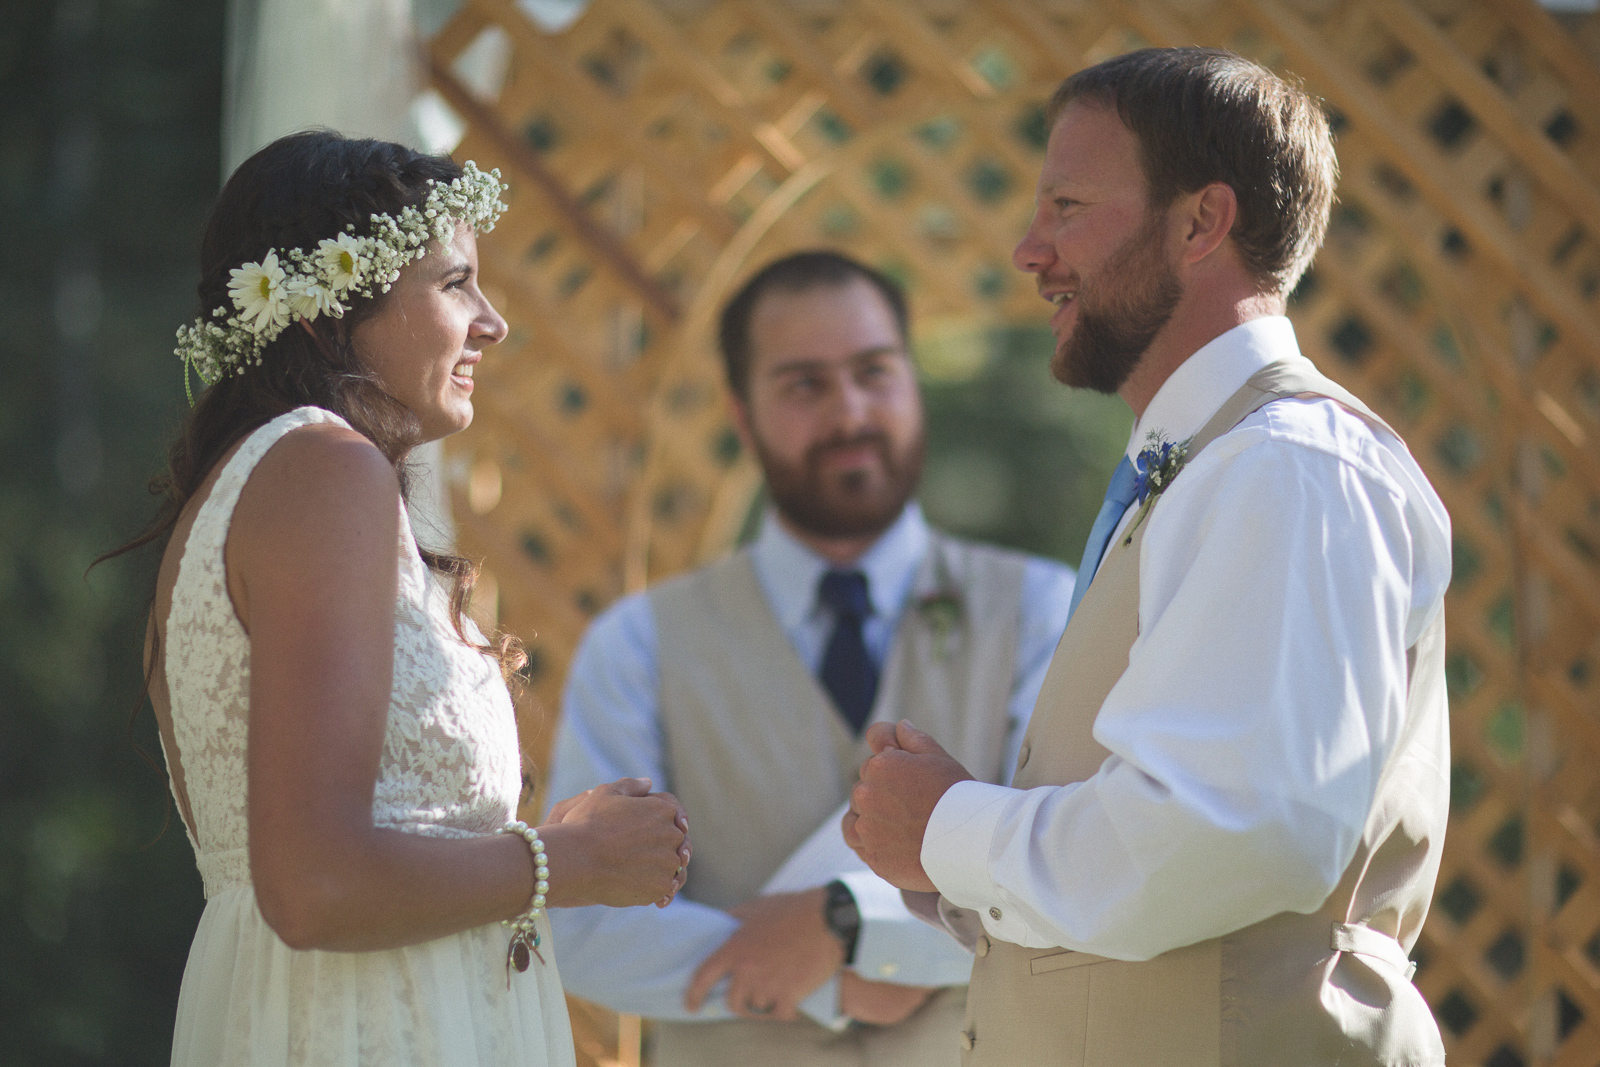 077-wedding-party-bus-fun-photography-ceremony